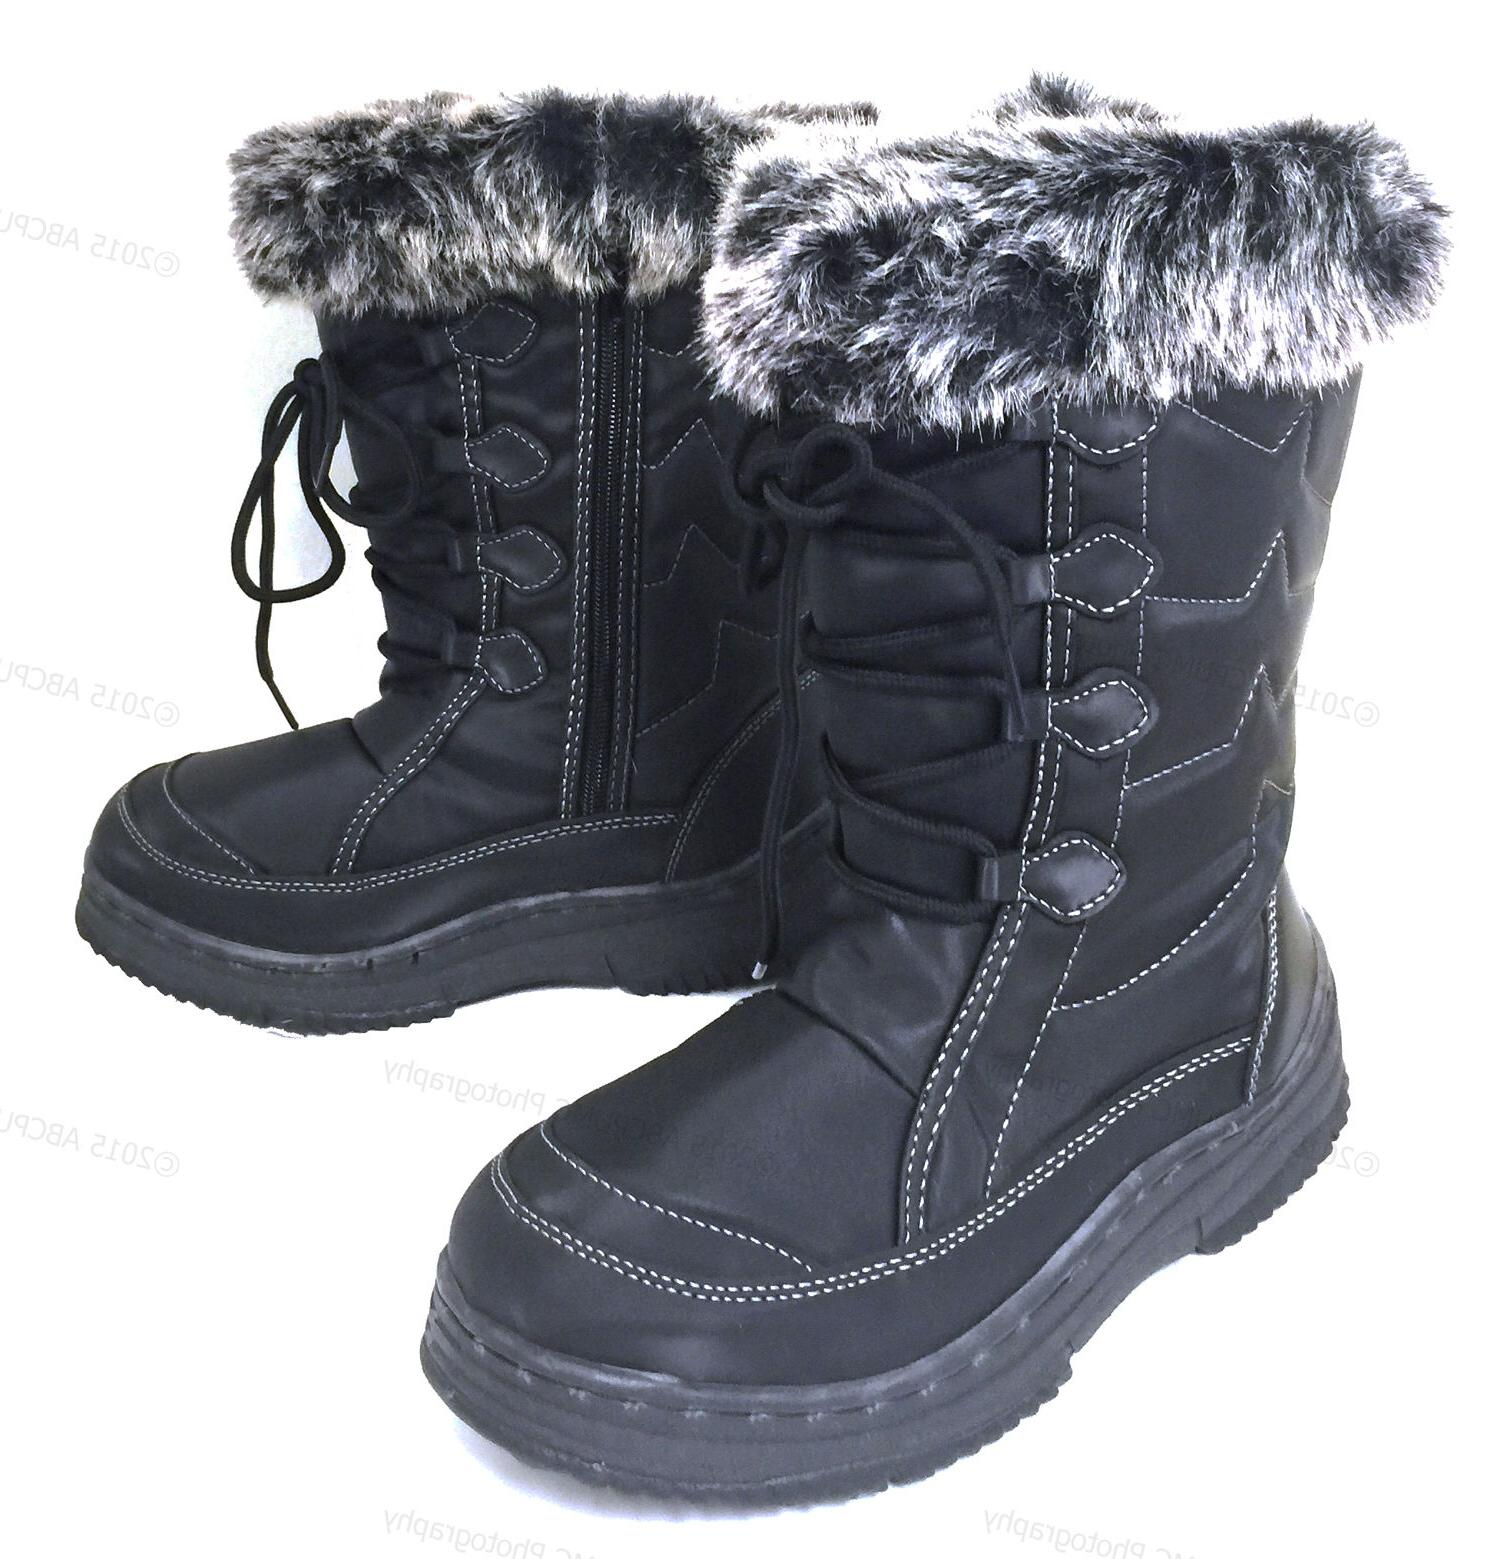 womens winter boots fur lined insulated water